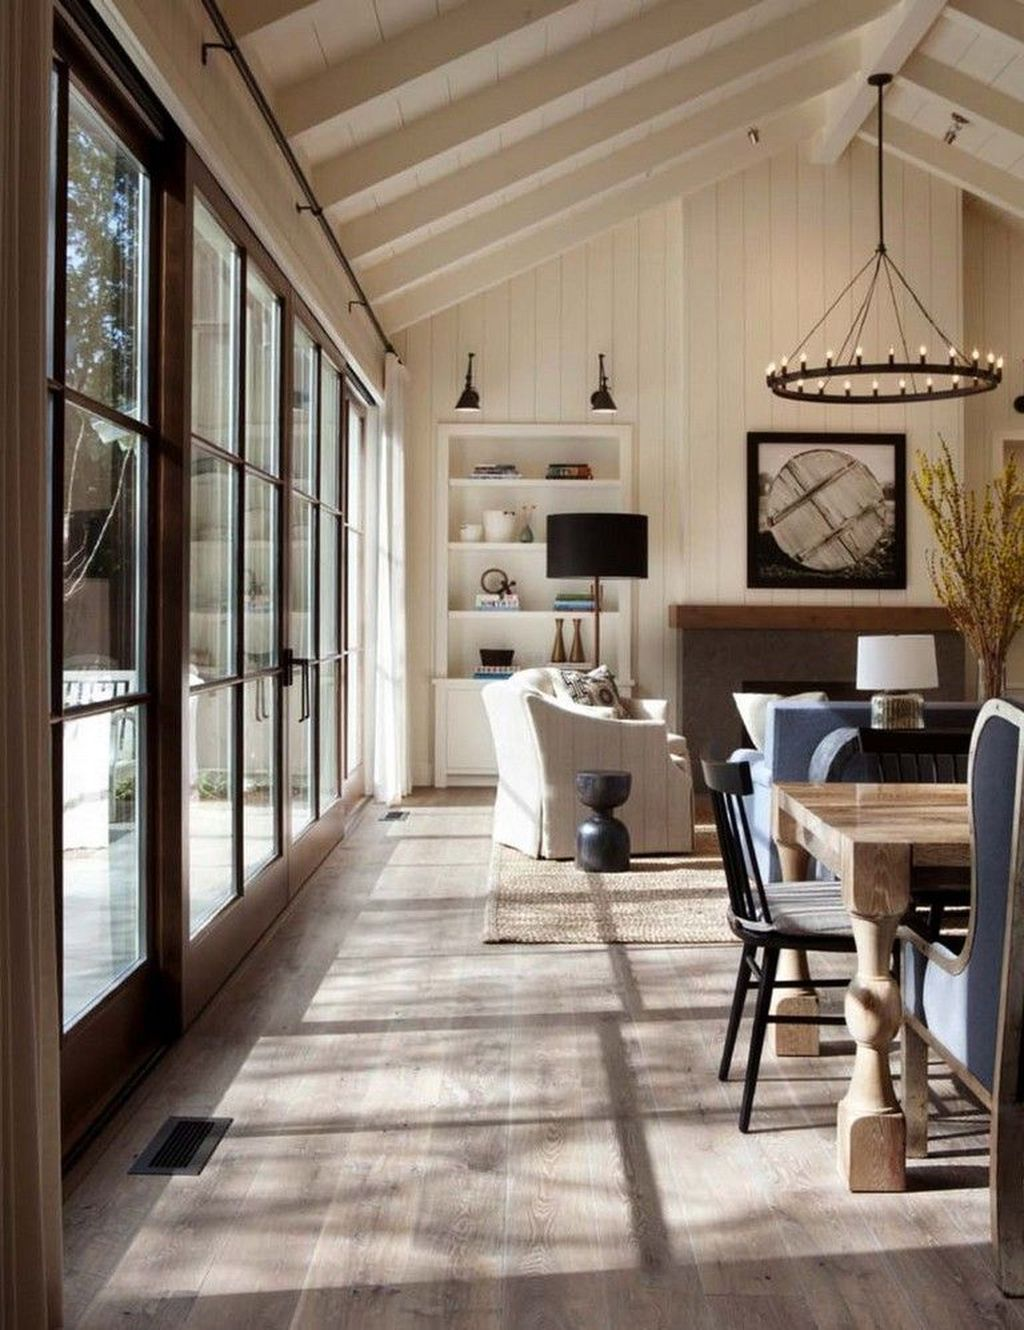 The Best Country Style Interior Design Ideas 07